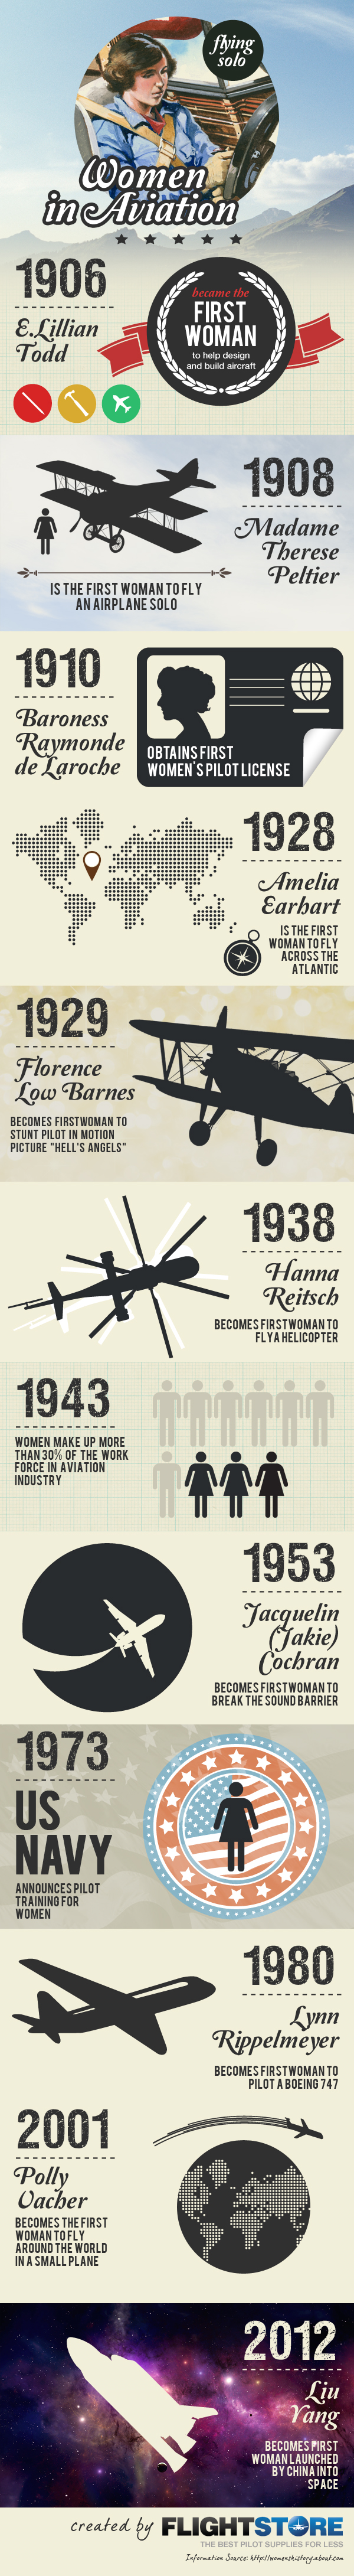 History of Women in Aviation